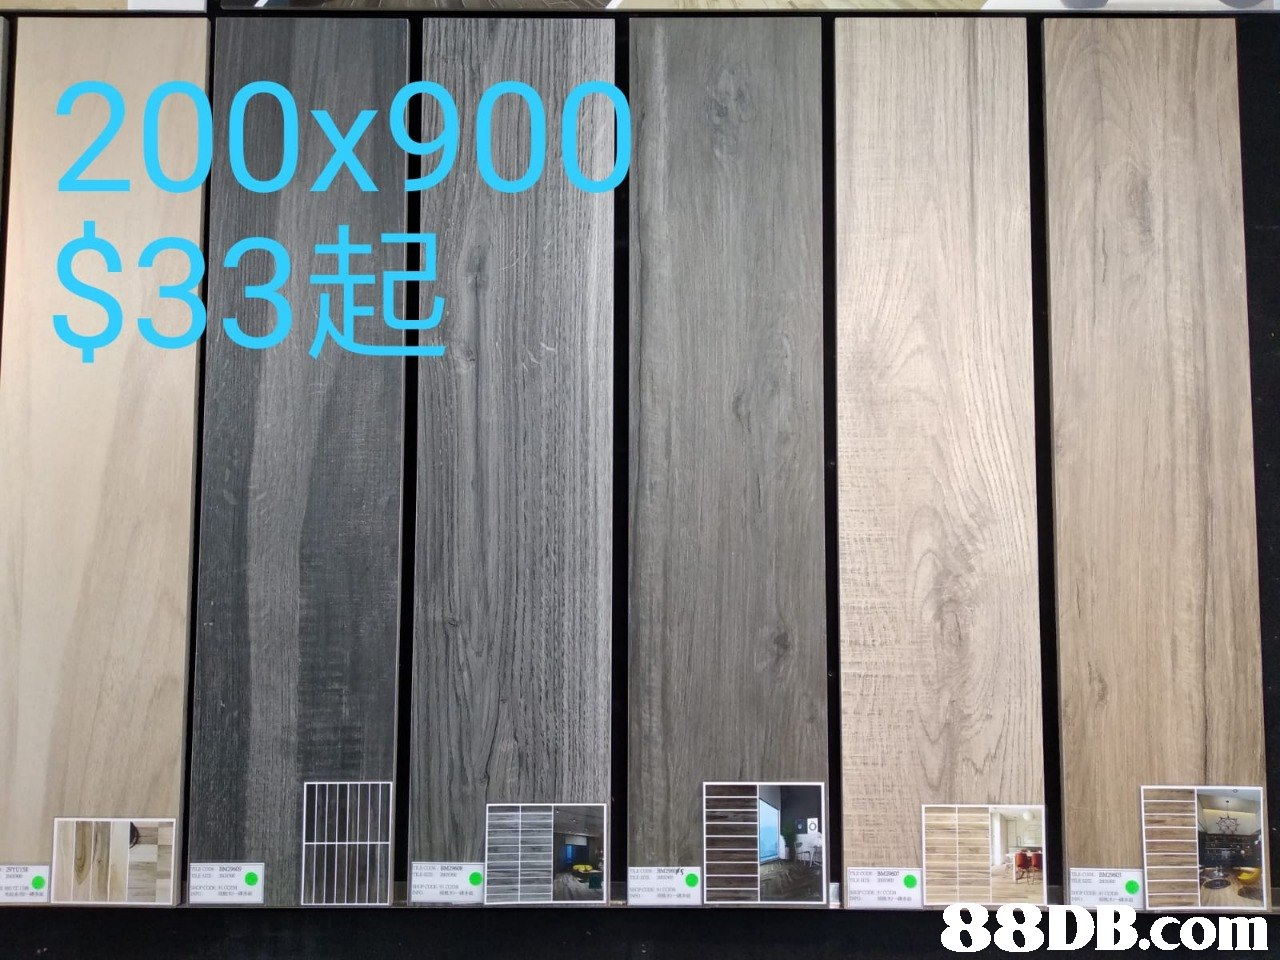 200x900 $33起 .com  Text,Wood,Wall,Technology,